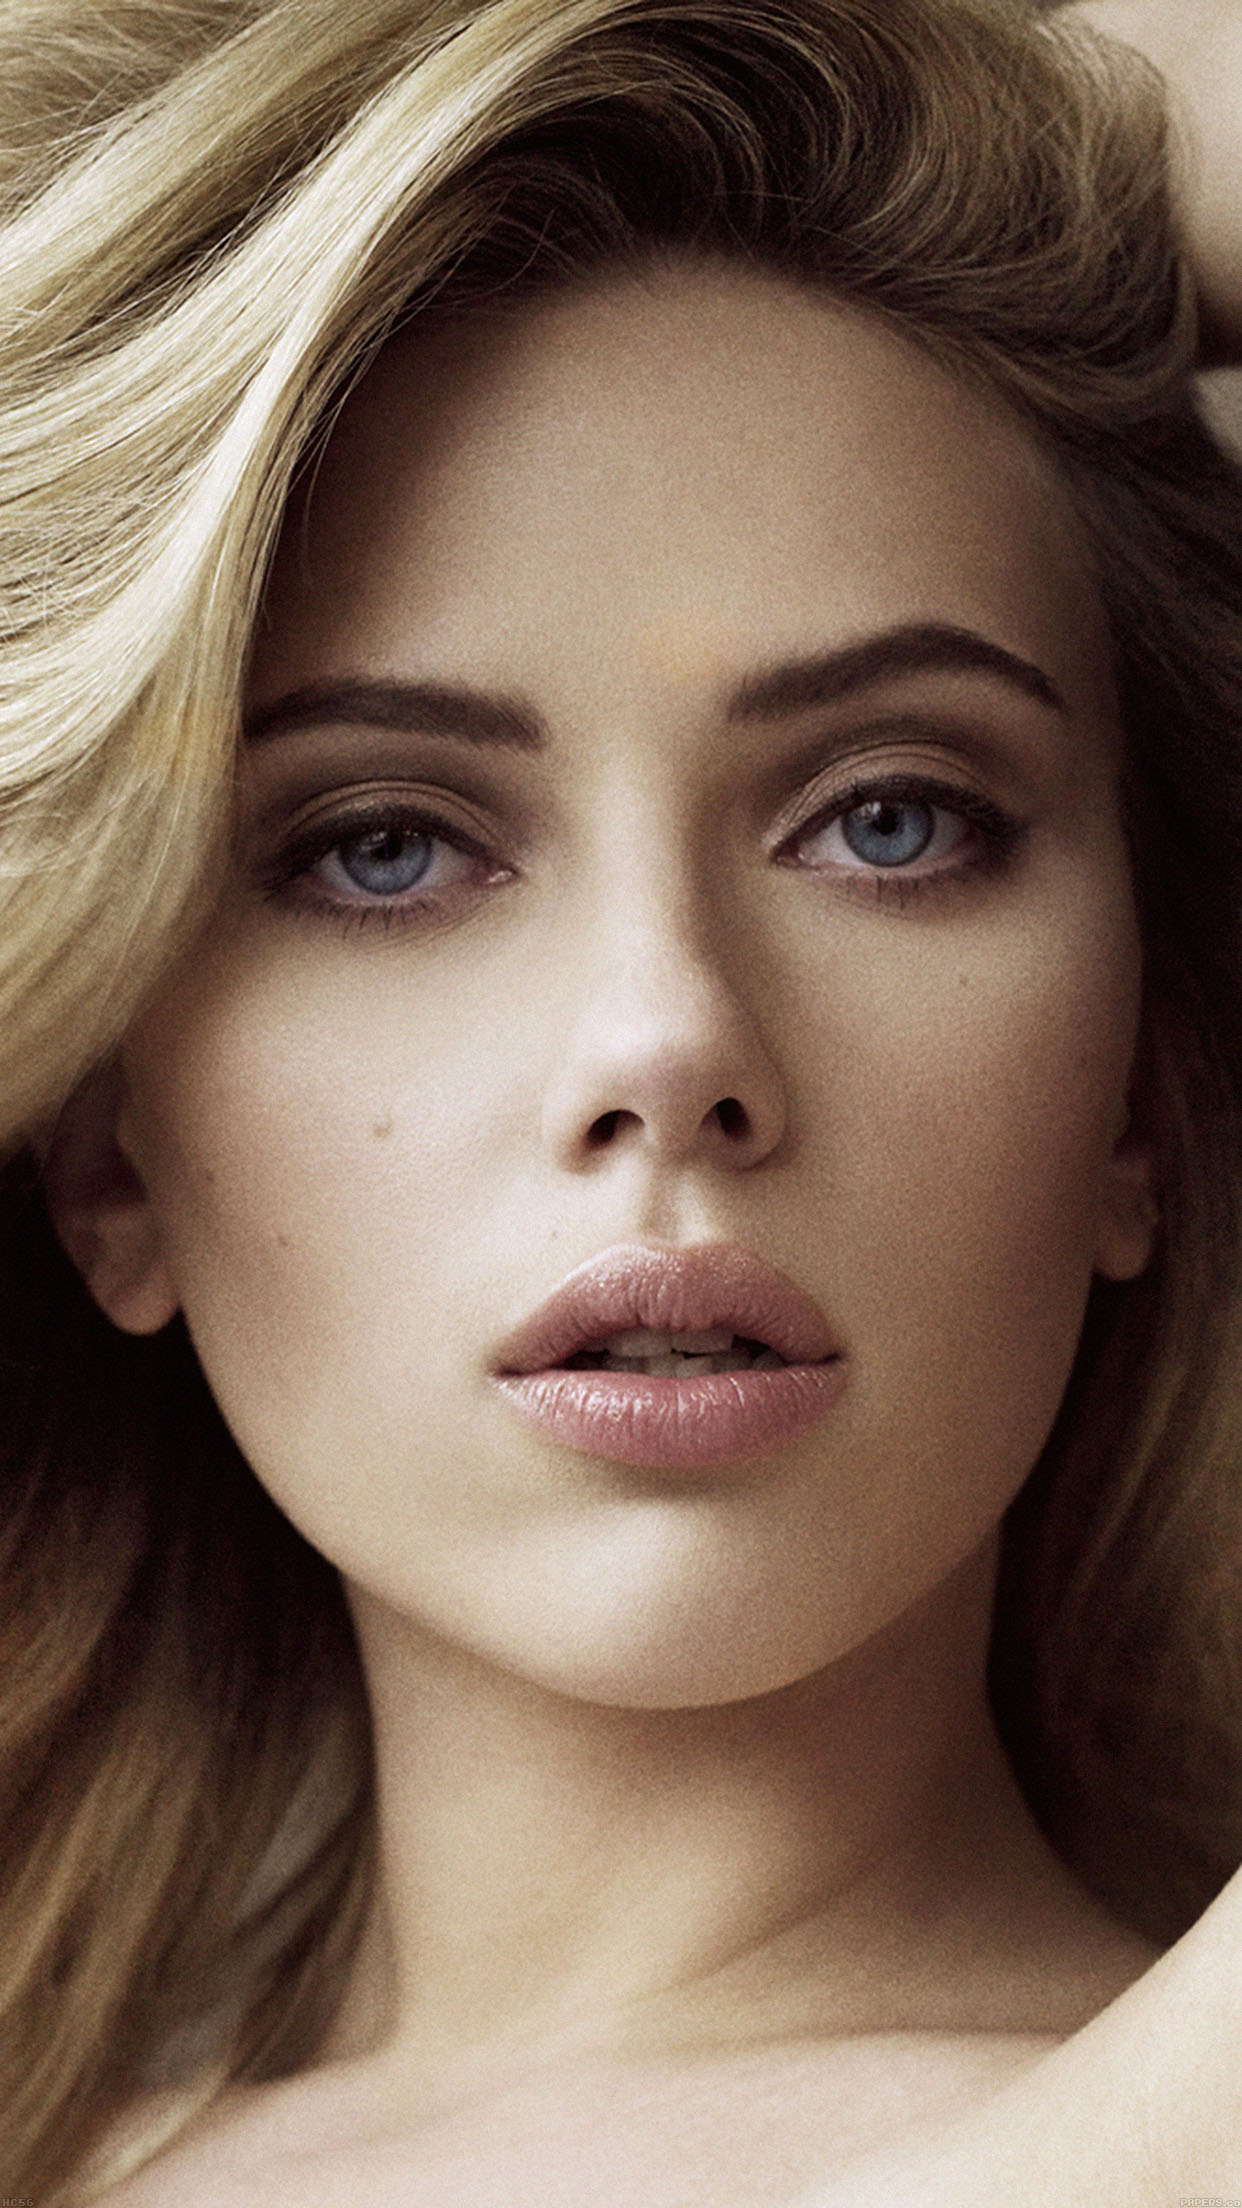 PAPERS.co | iPhone wallpaper | hc56-scarlett-johansson ...